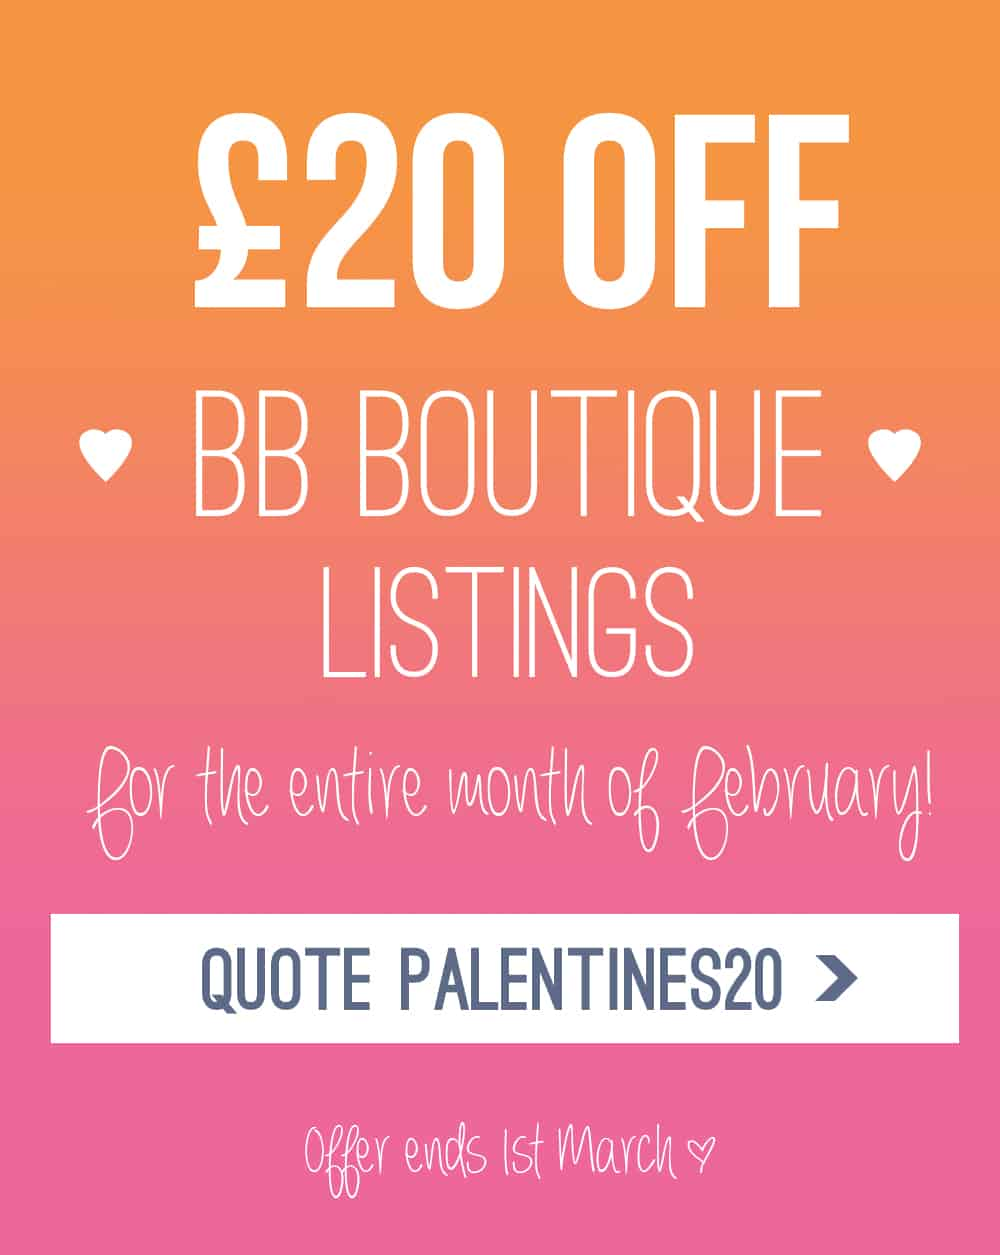 Palentines Offer Suppliers